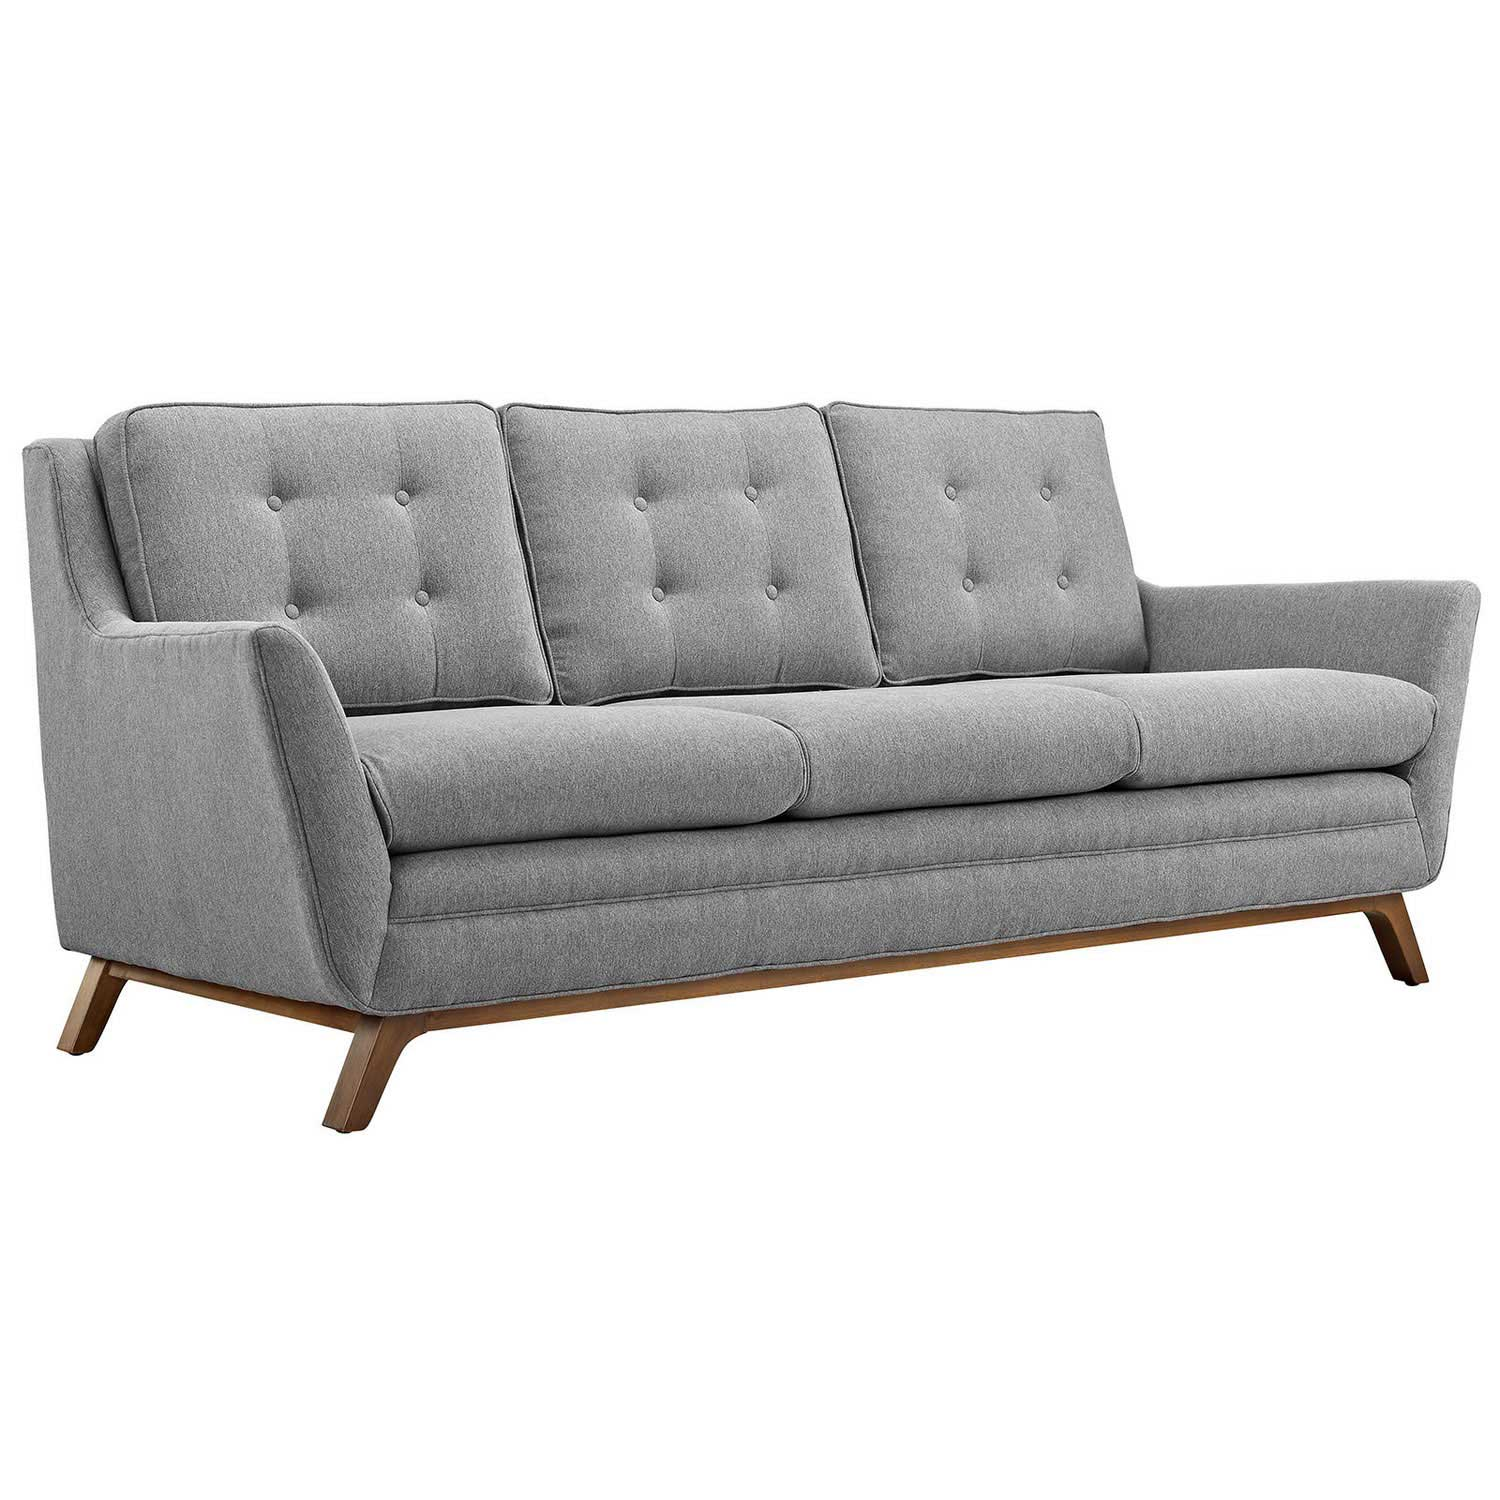 Modway Beguile Fabric Sofa - Expectation Gray